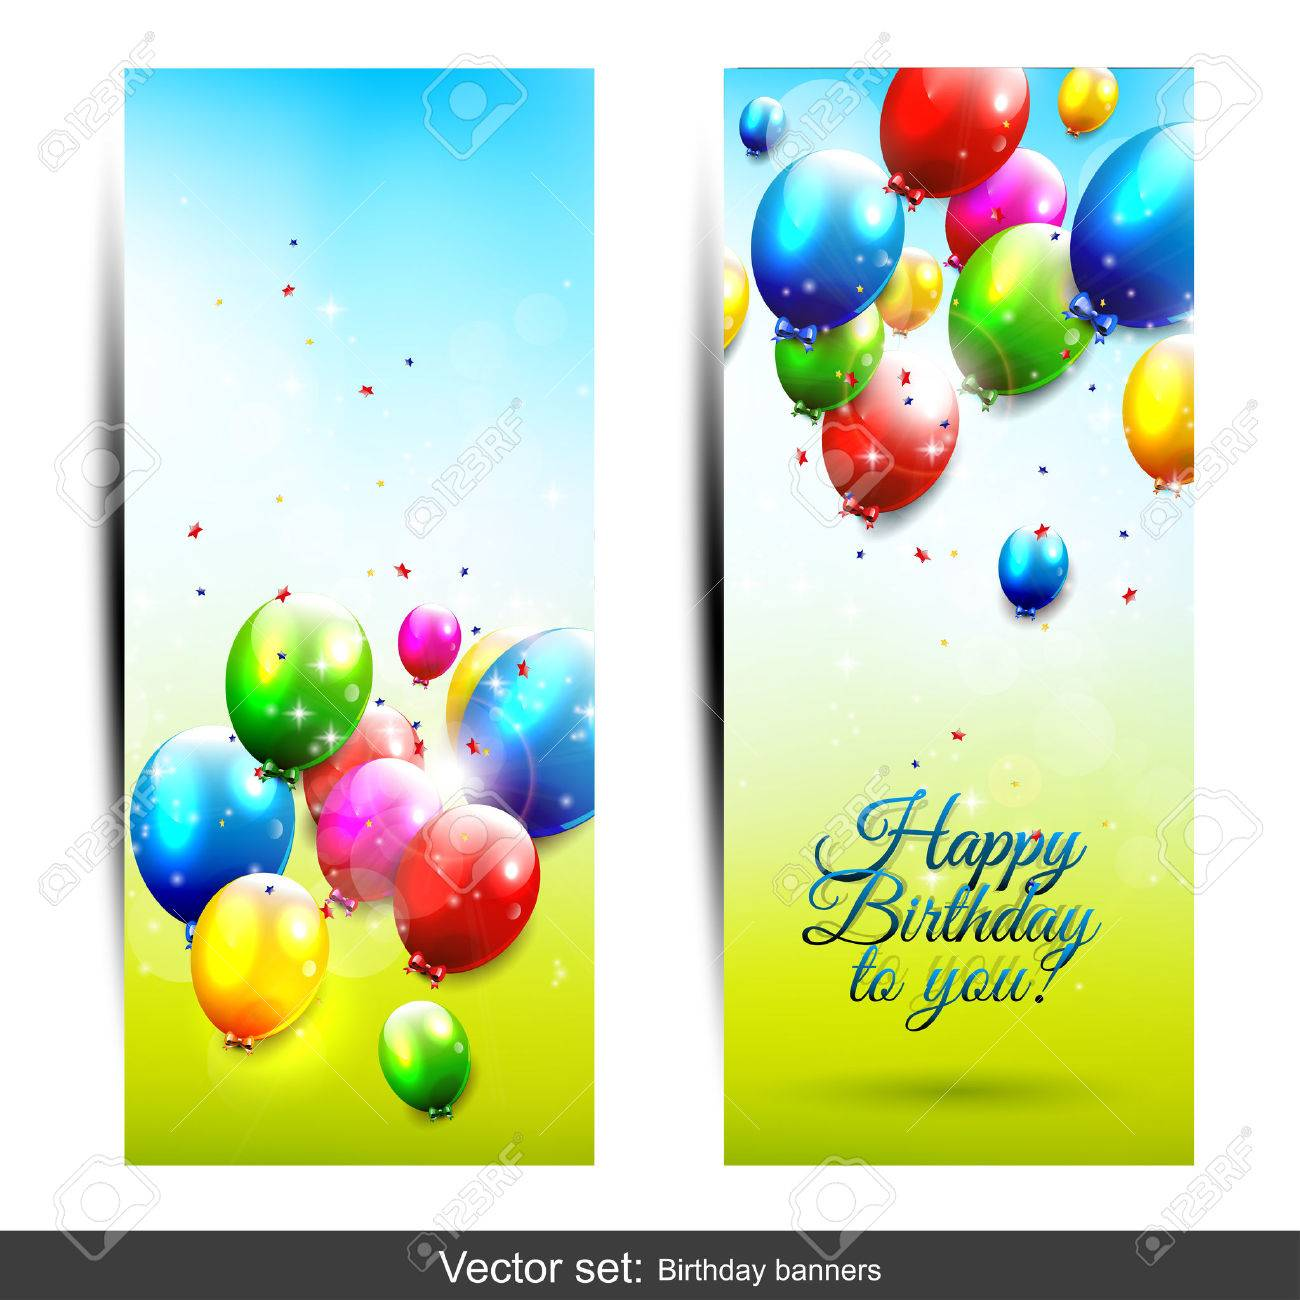 set of two vertical birthday banners with flying baloons royalty